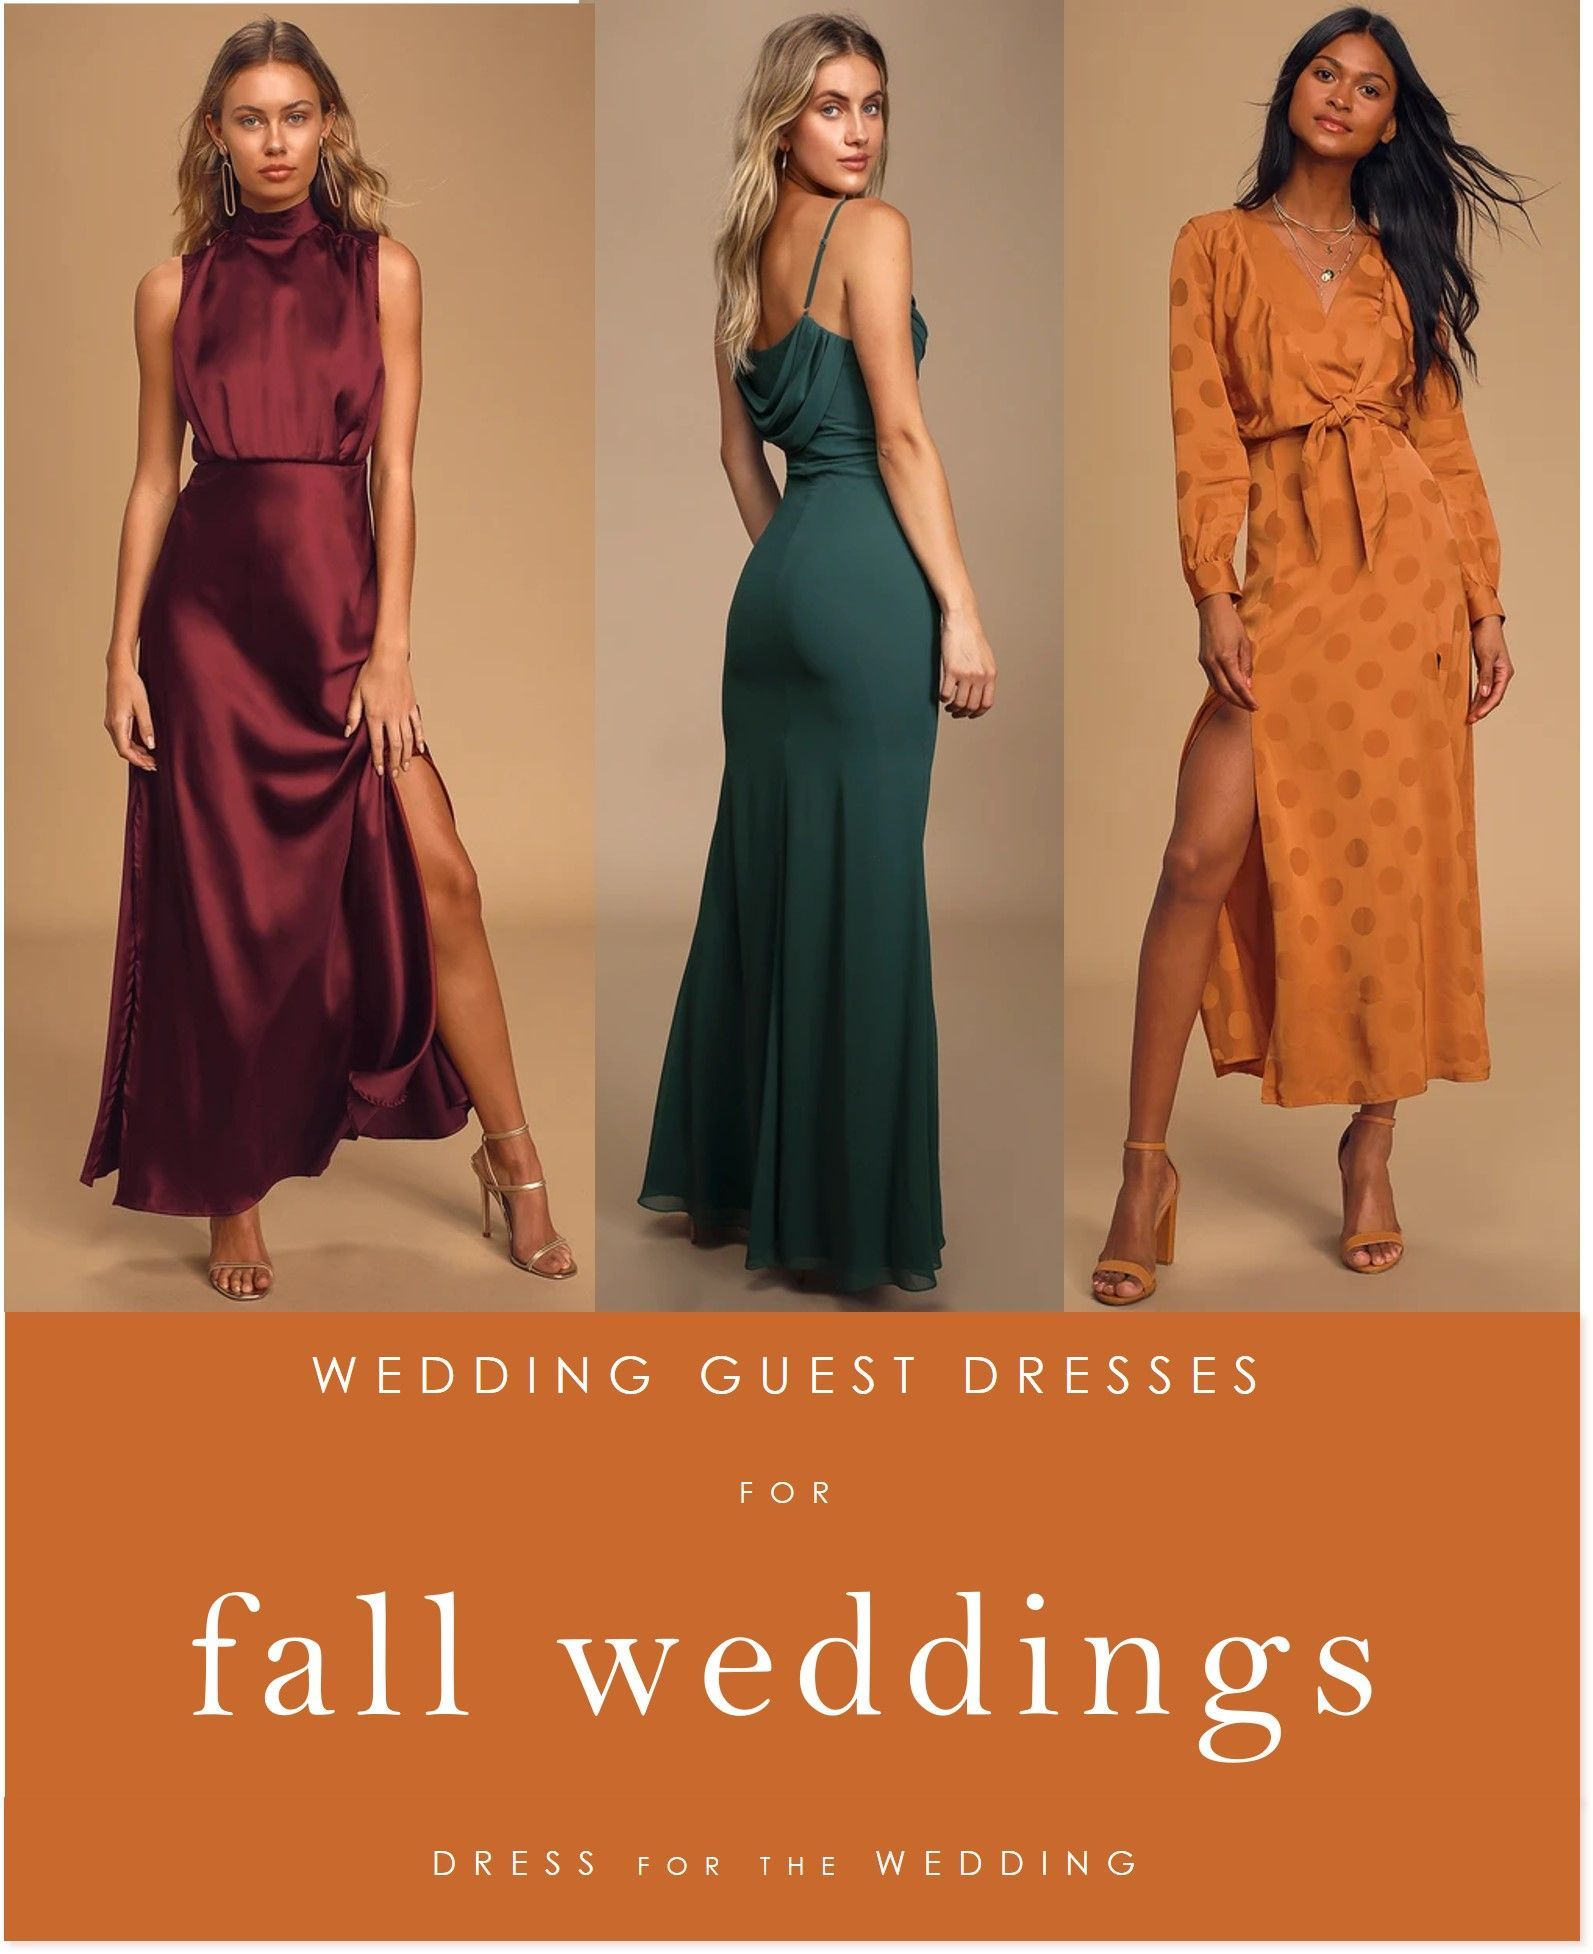 Dresses to wear to fall events and weddings #weddingguest